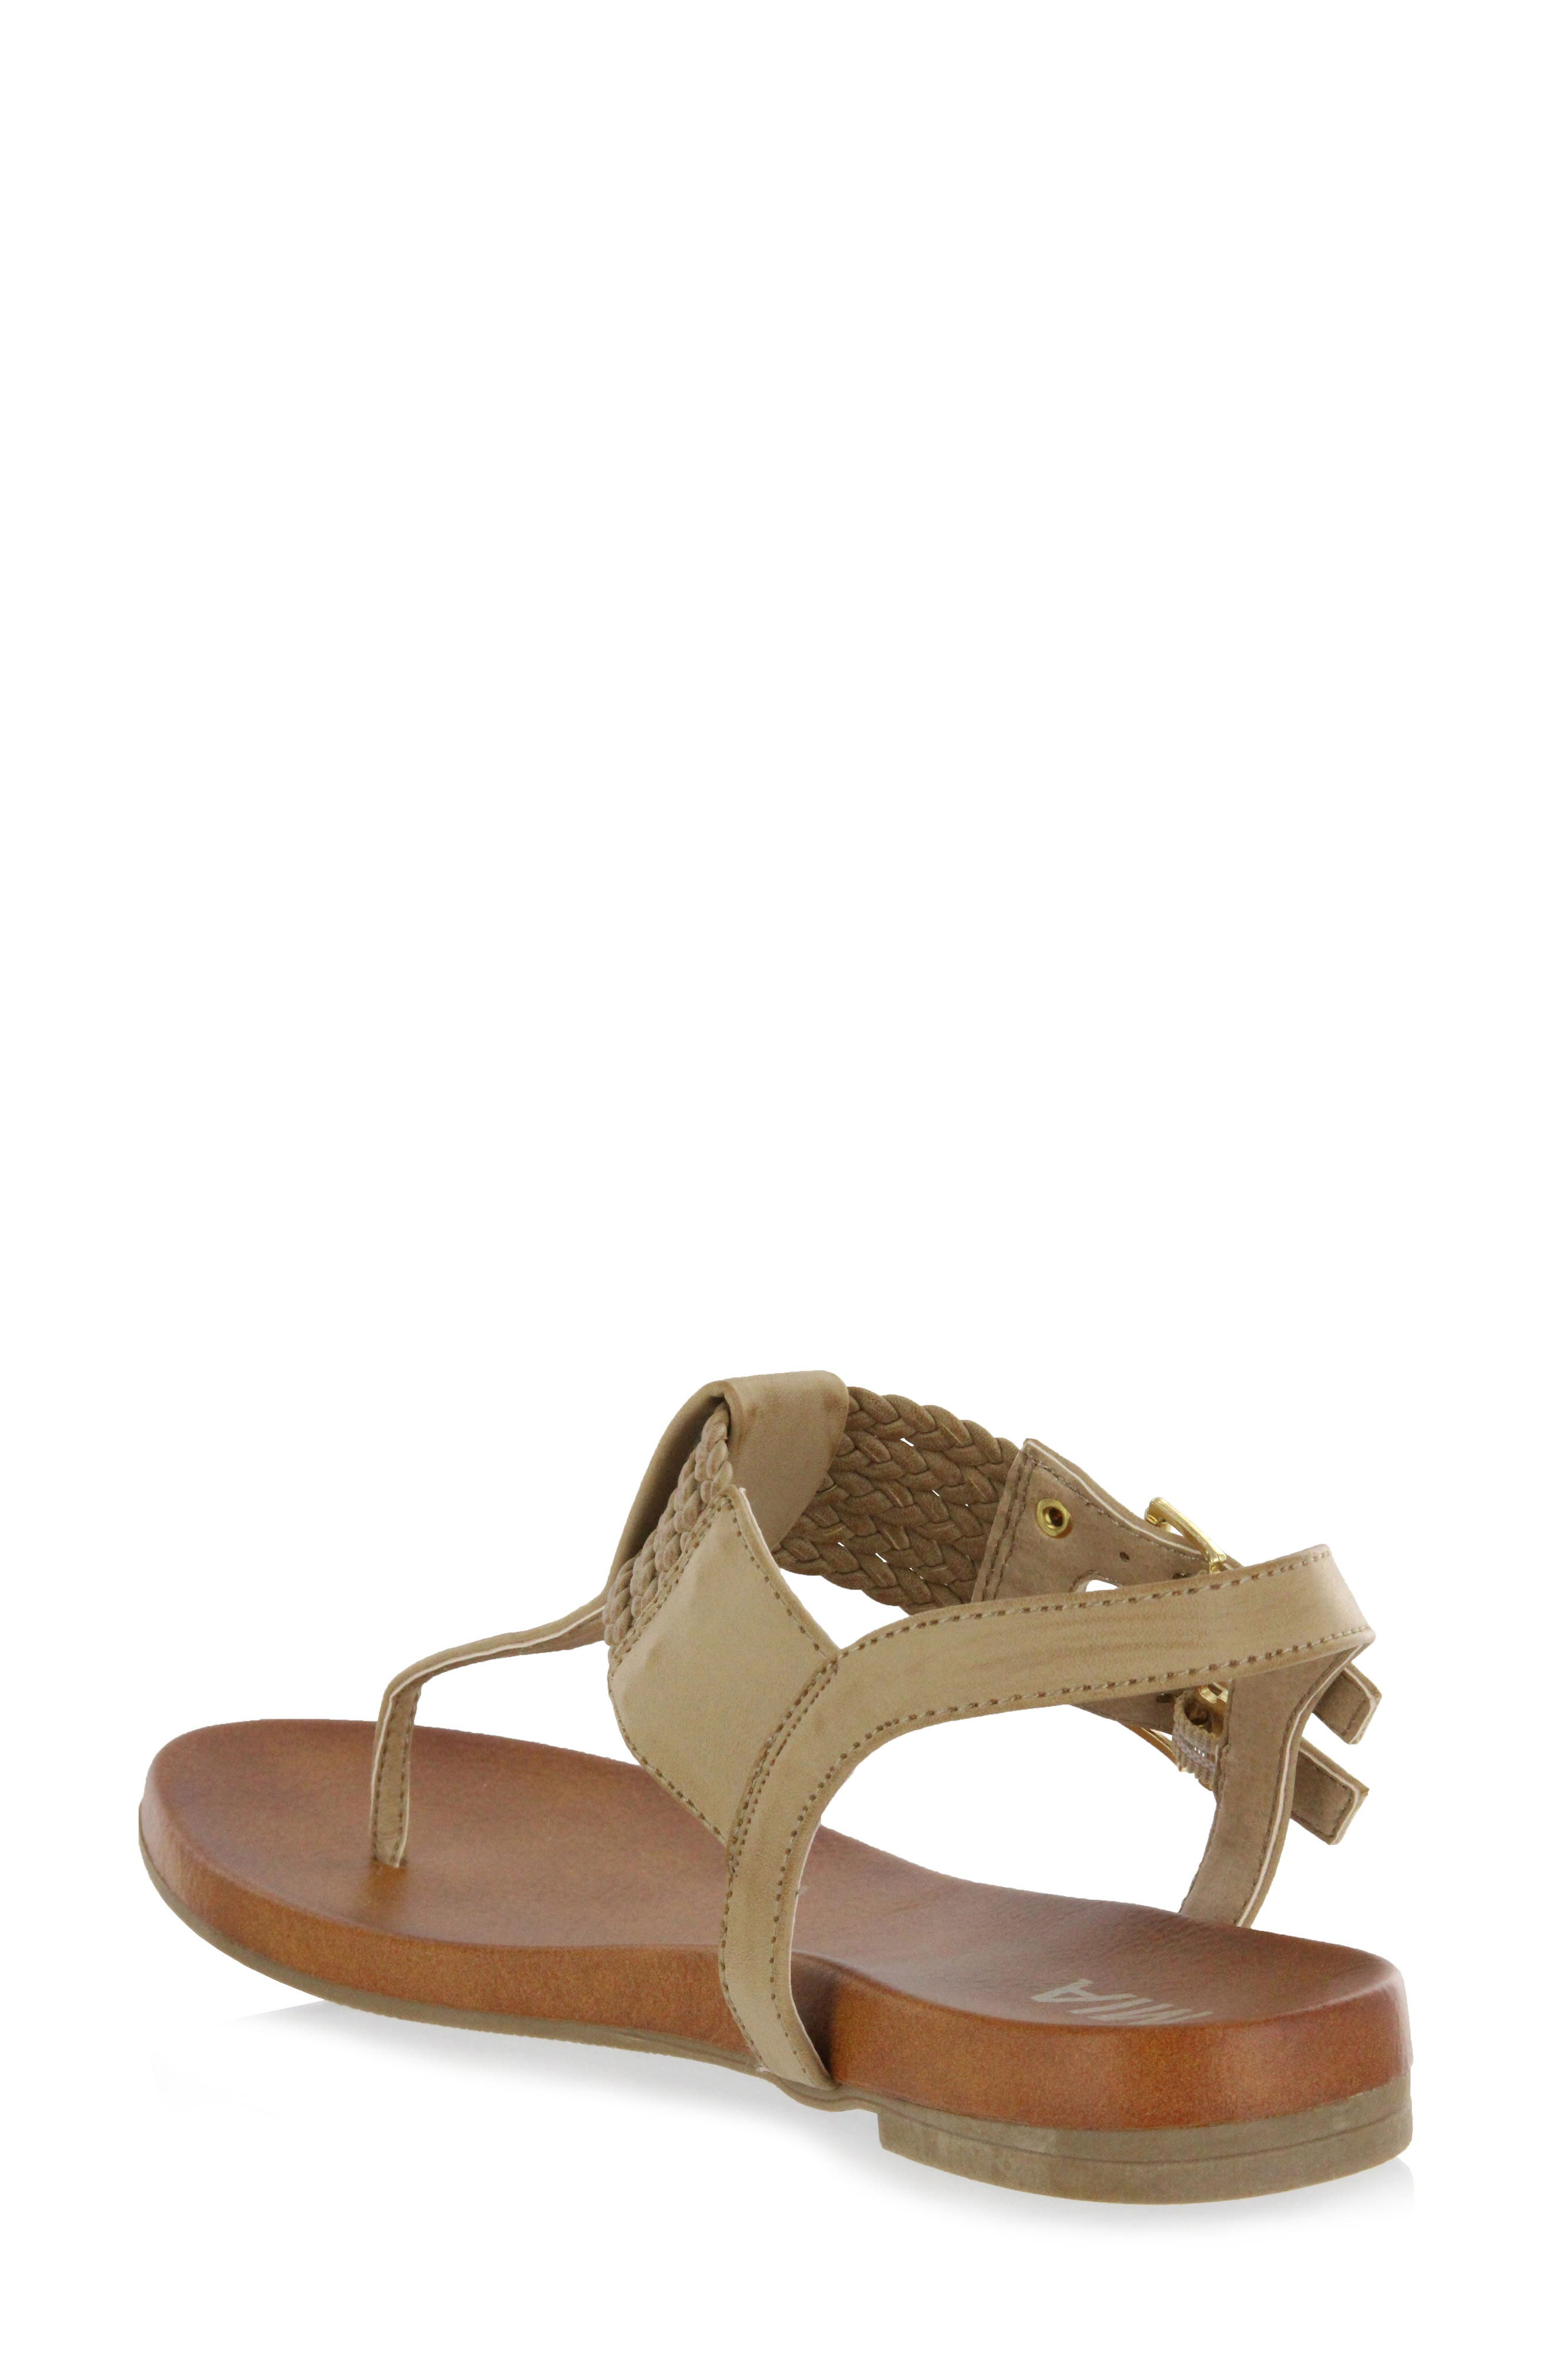 Dianna Sandal,                             Alternate thumbnail 2, color,                             231